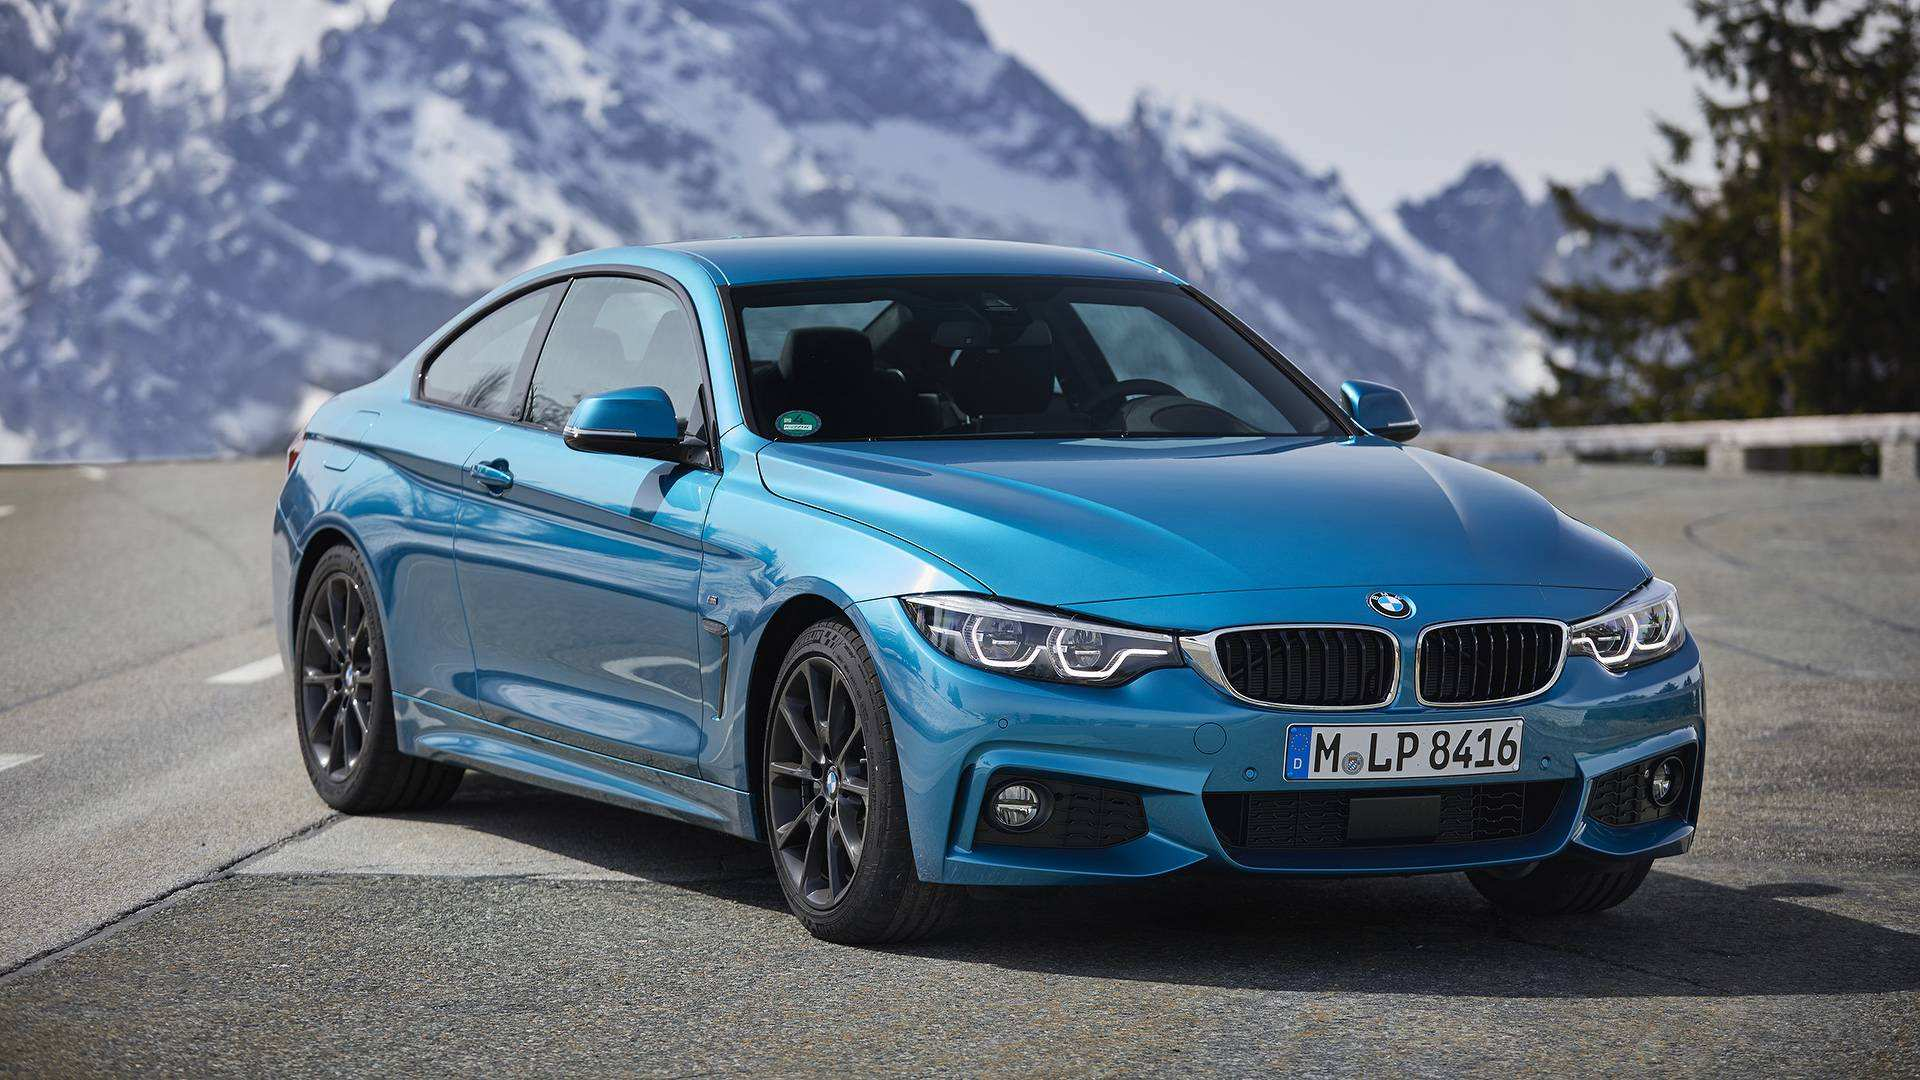 41 All New 2019 Bmw For Sale New Review by 2019 Bmw For Sale